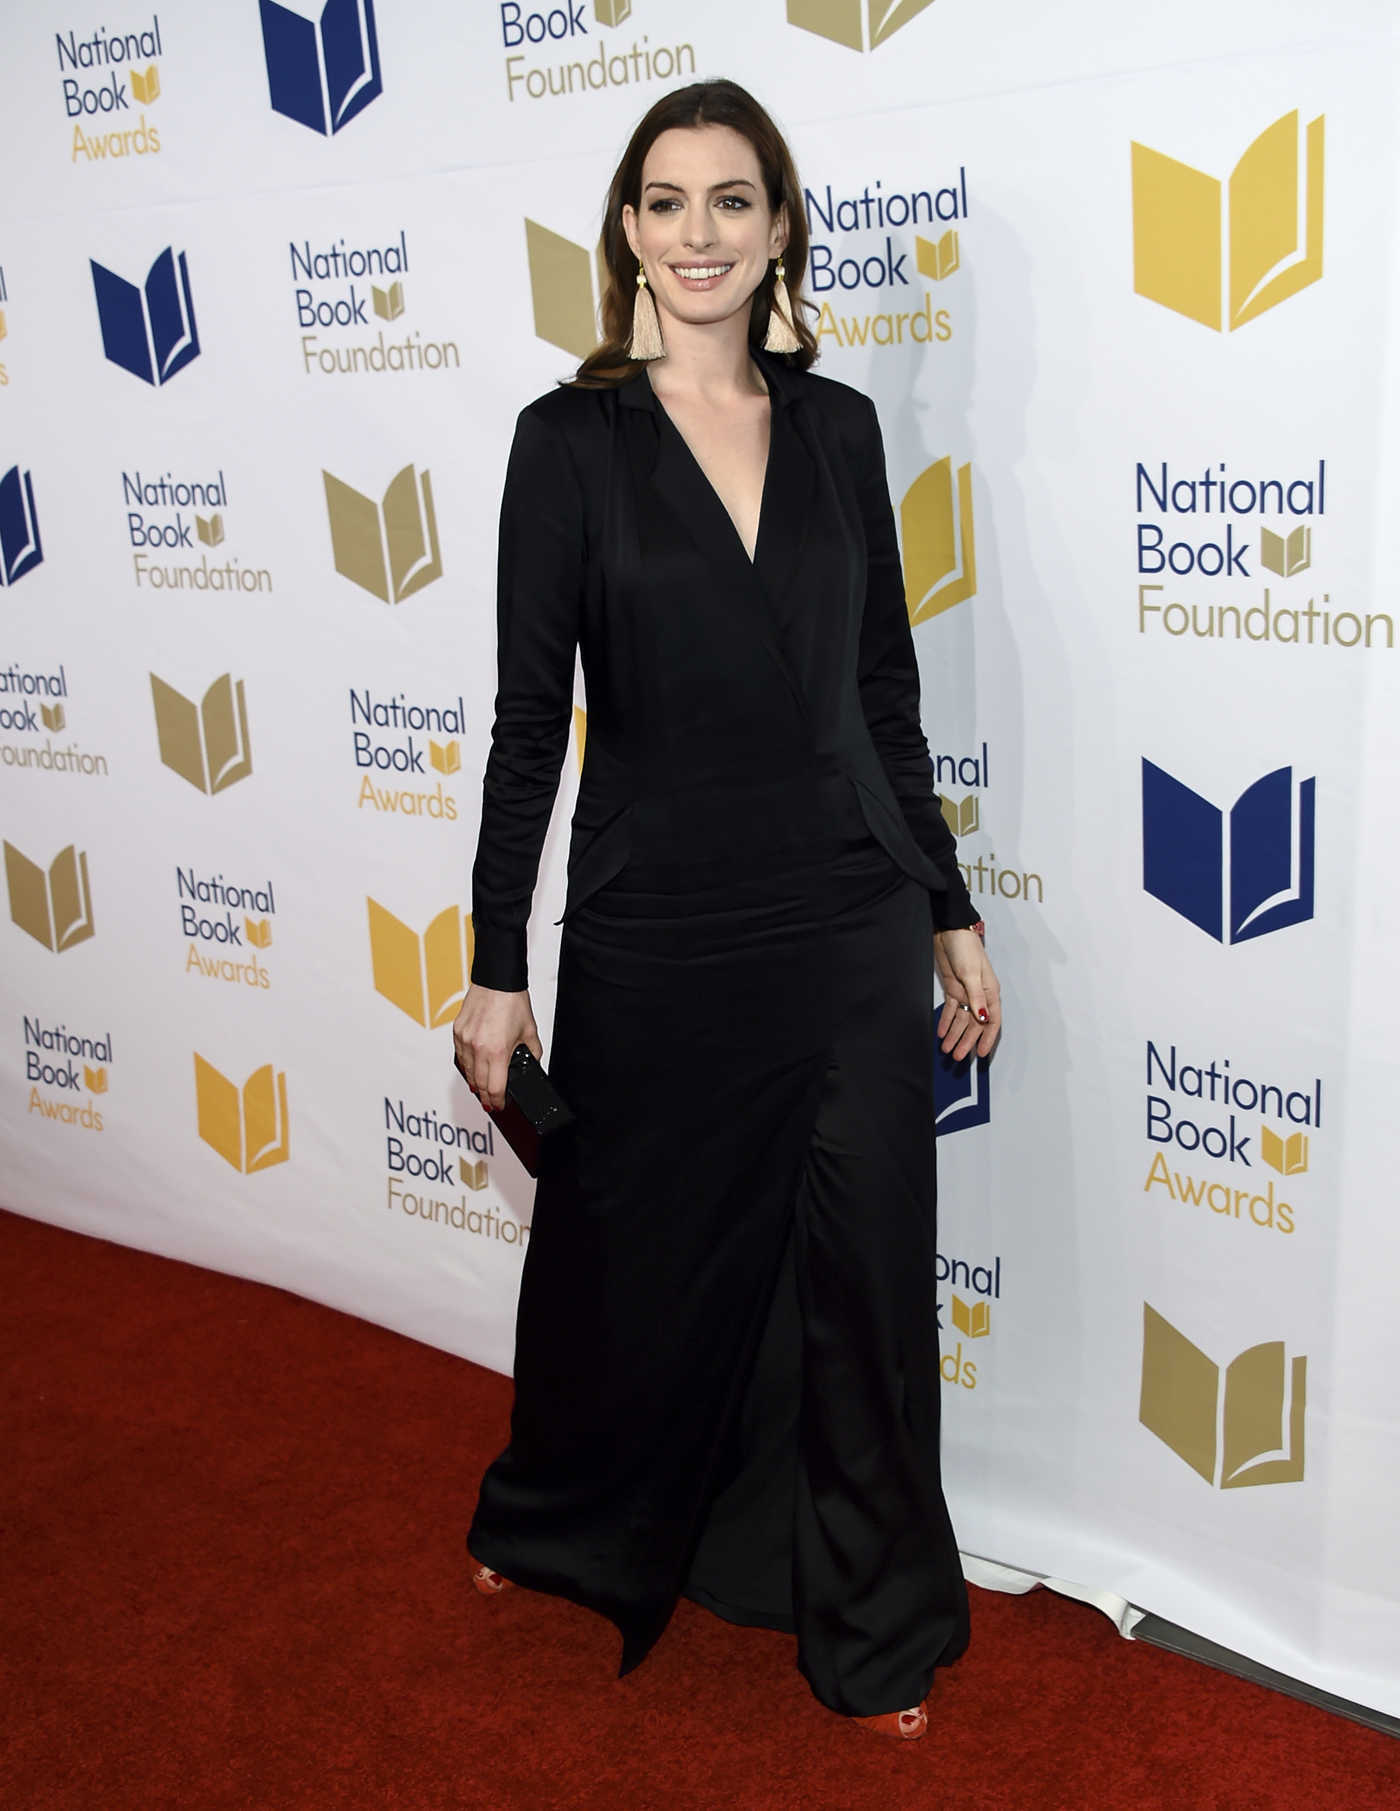 Anne Hathaway at the 68th National Book Awards in New York City 11/15/2017